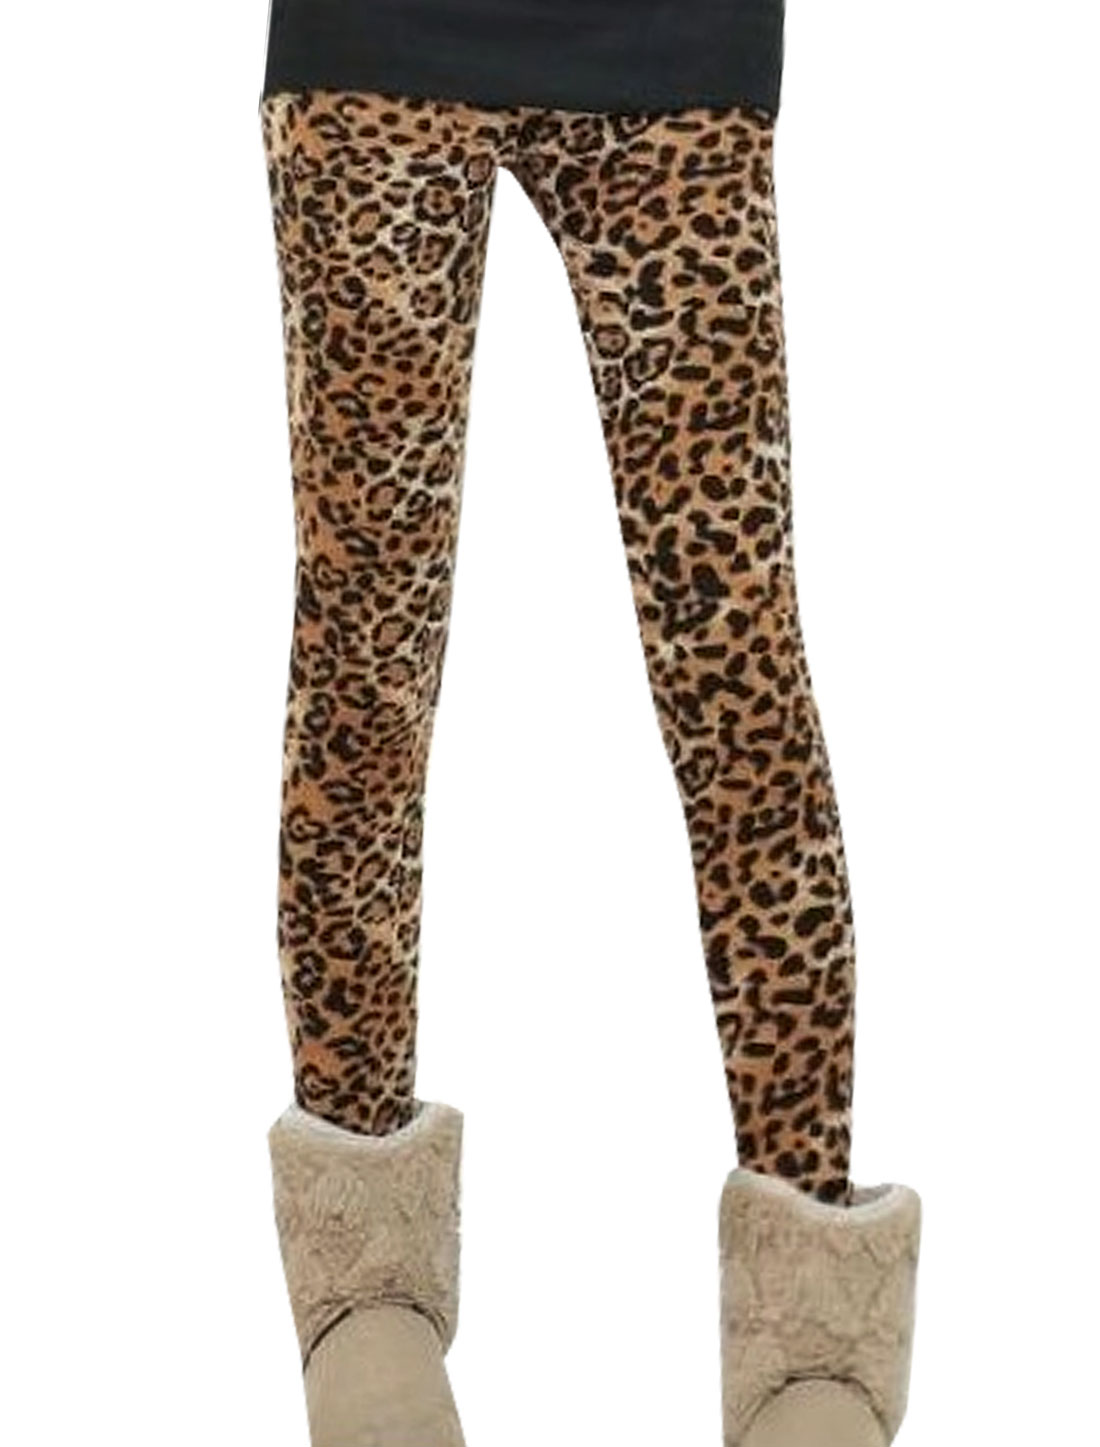 Women Skinny Fleece Lined Leopard Prints Leggings Brown Black L